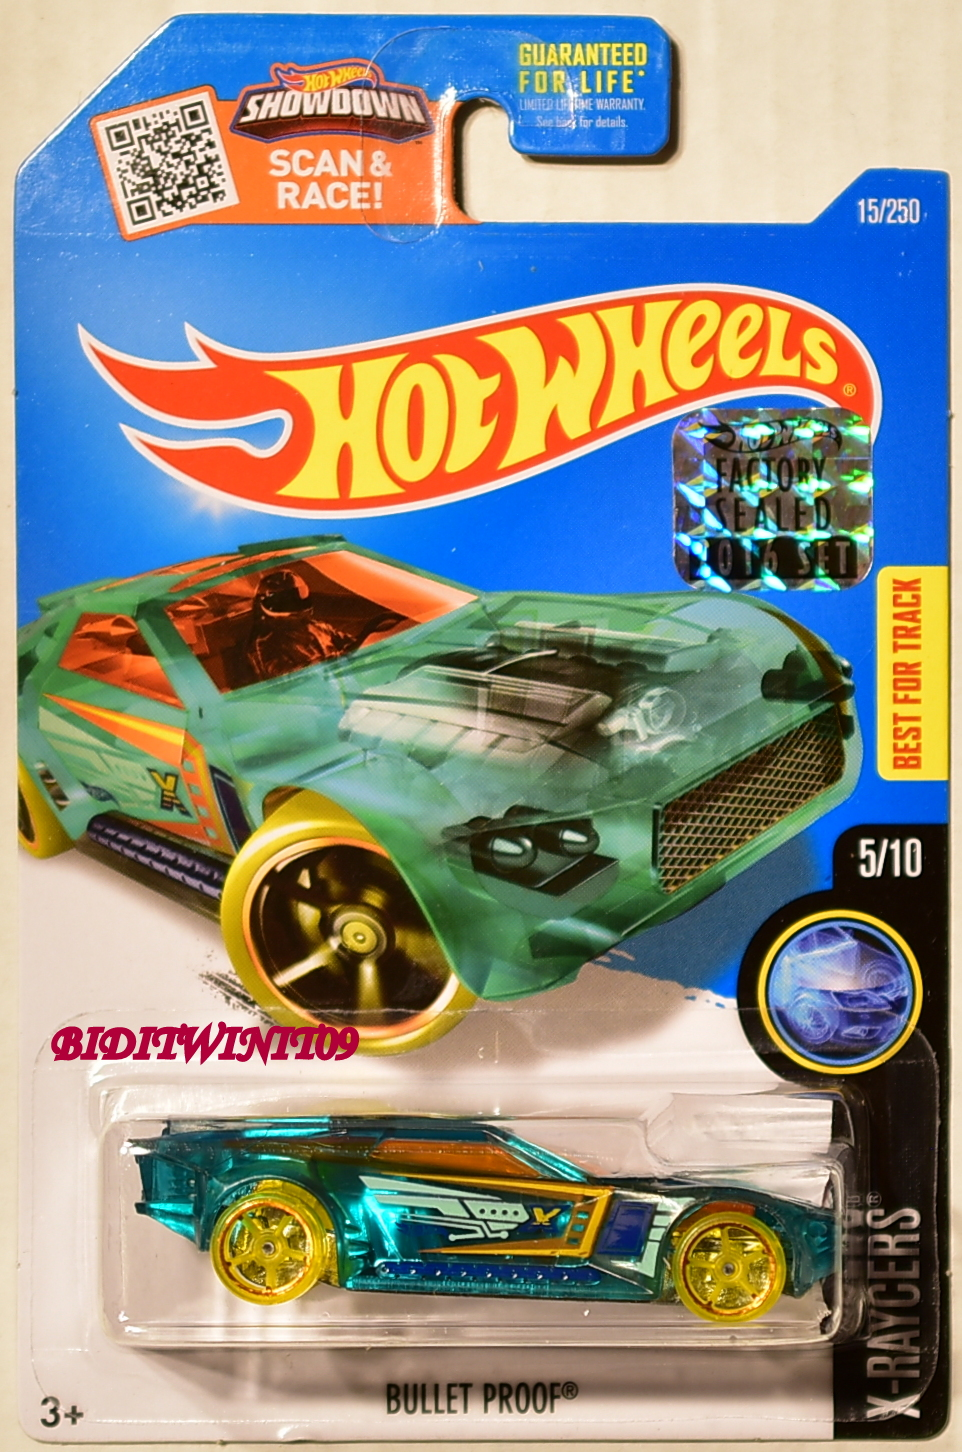 HOT WHEELS 2016 X-RAYCERS BULLET PROOF #5/10 FACTORY SEALED